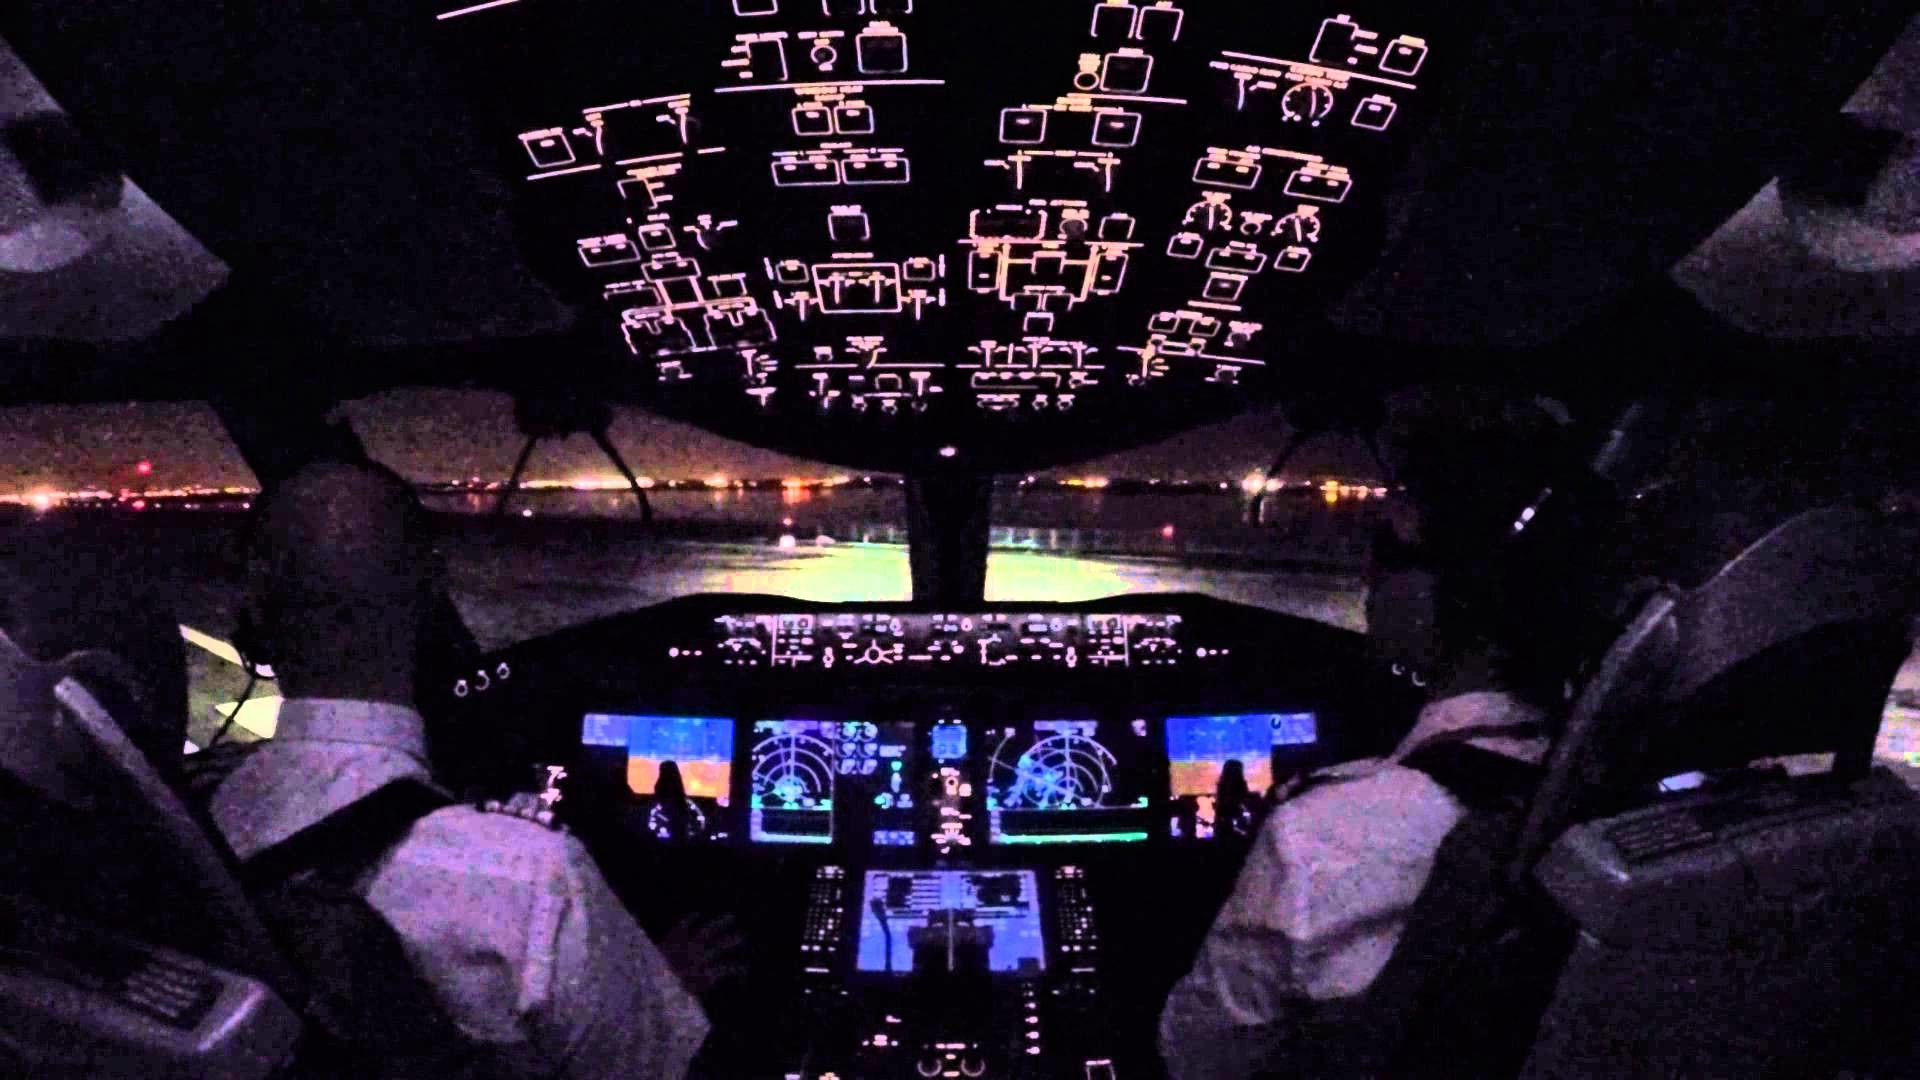 Cockpit view- Push back, Taxi and Take-off at JFK airport